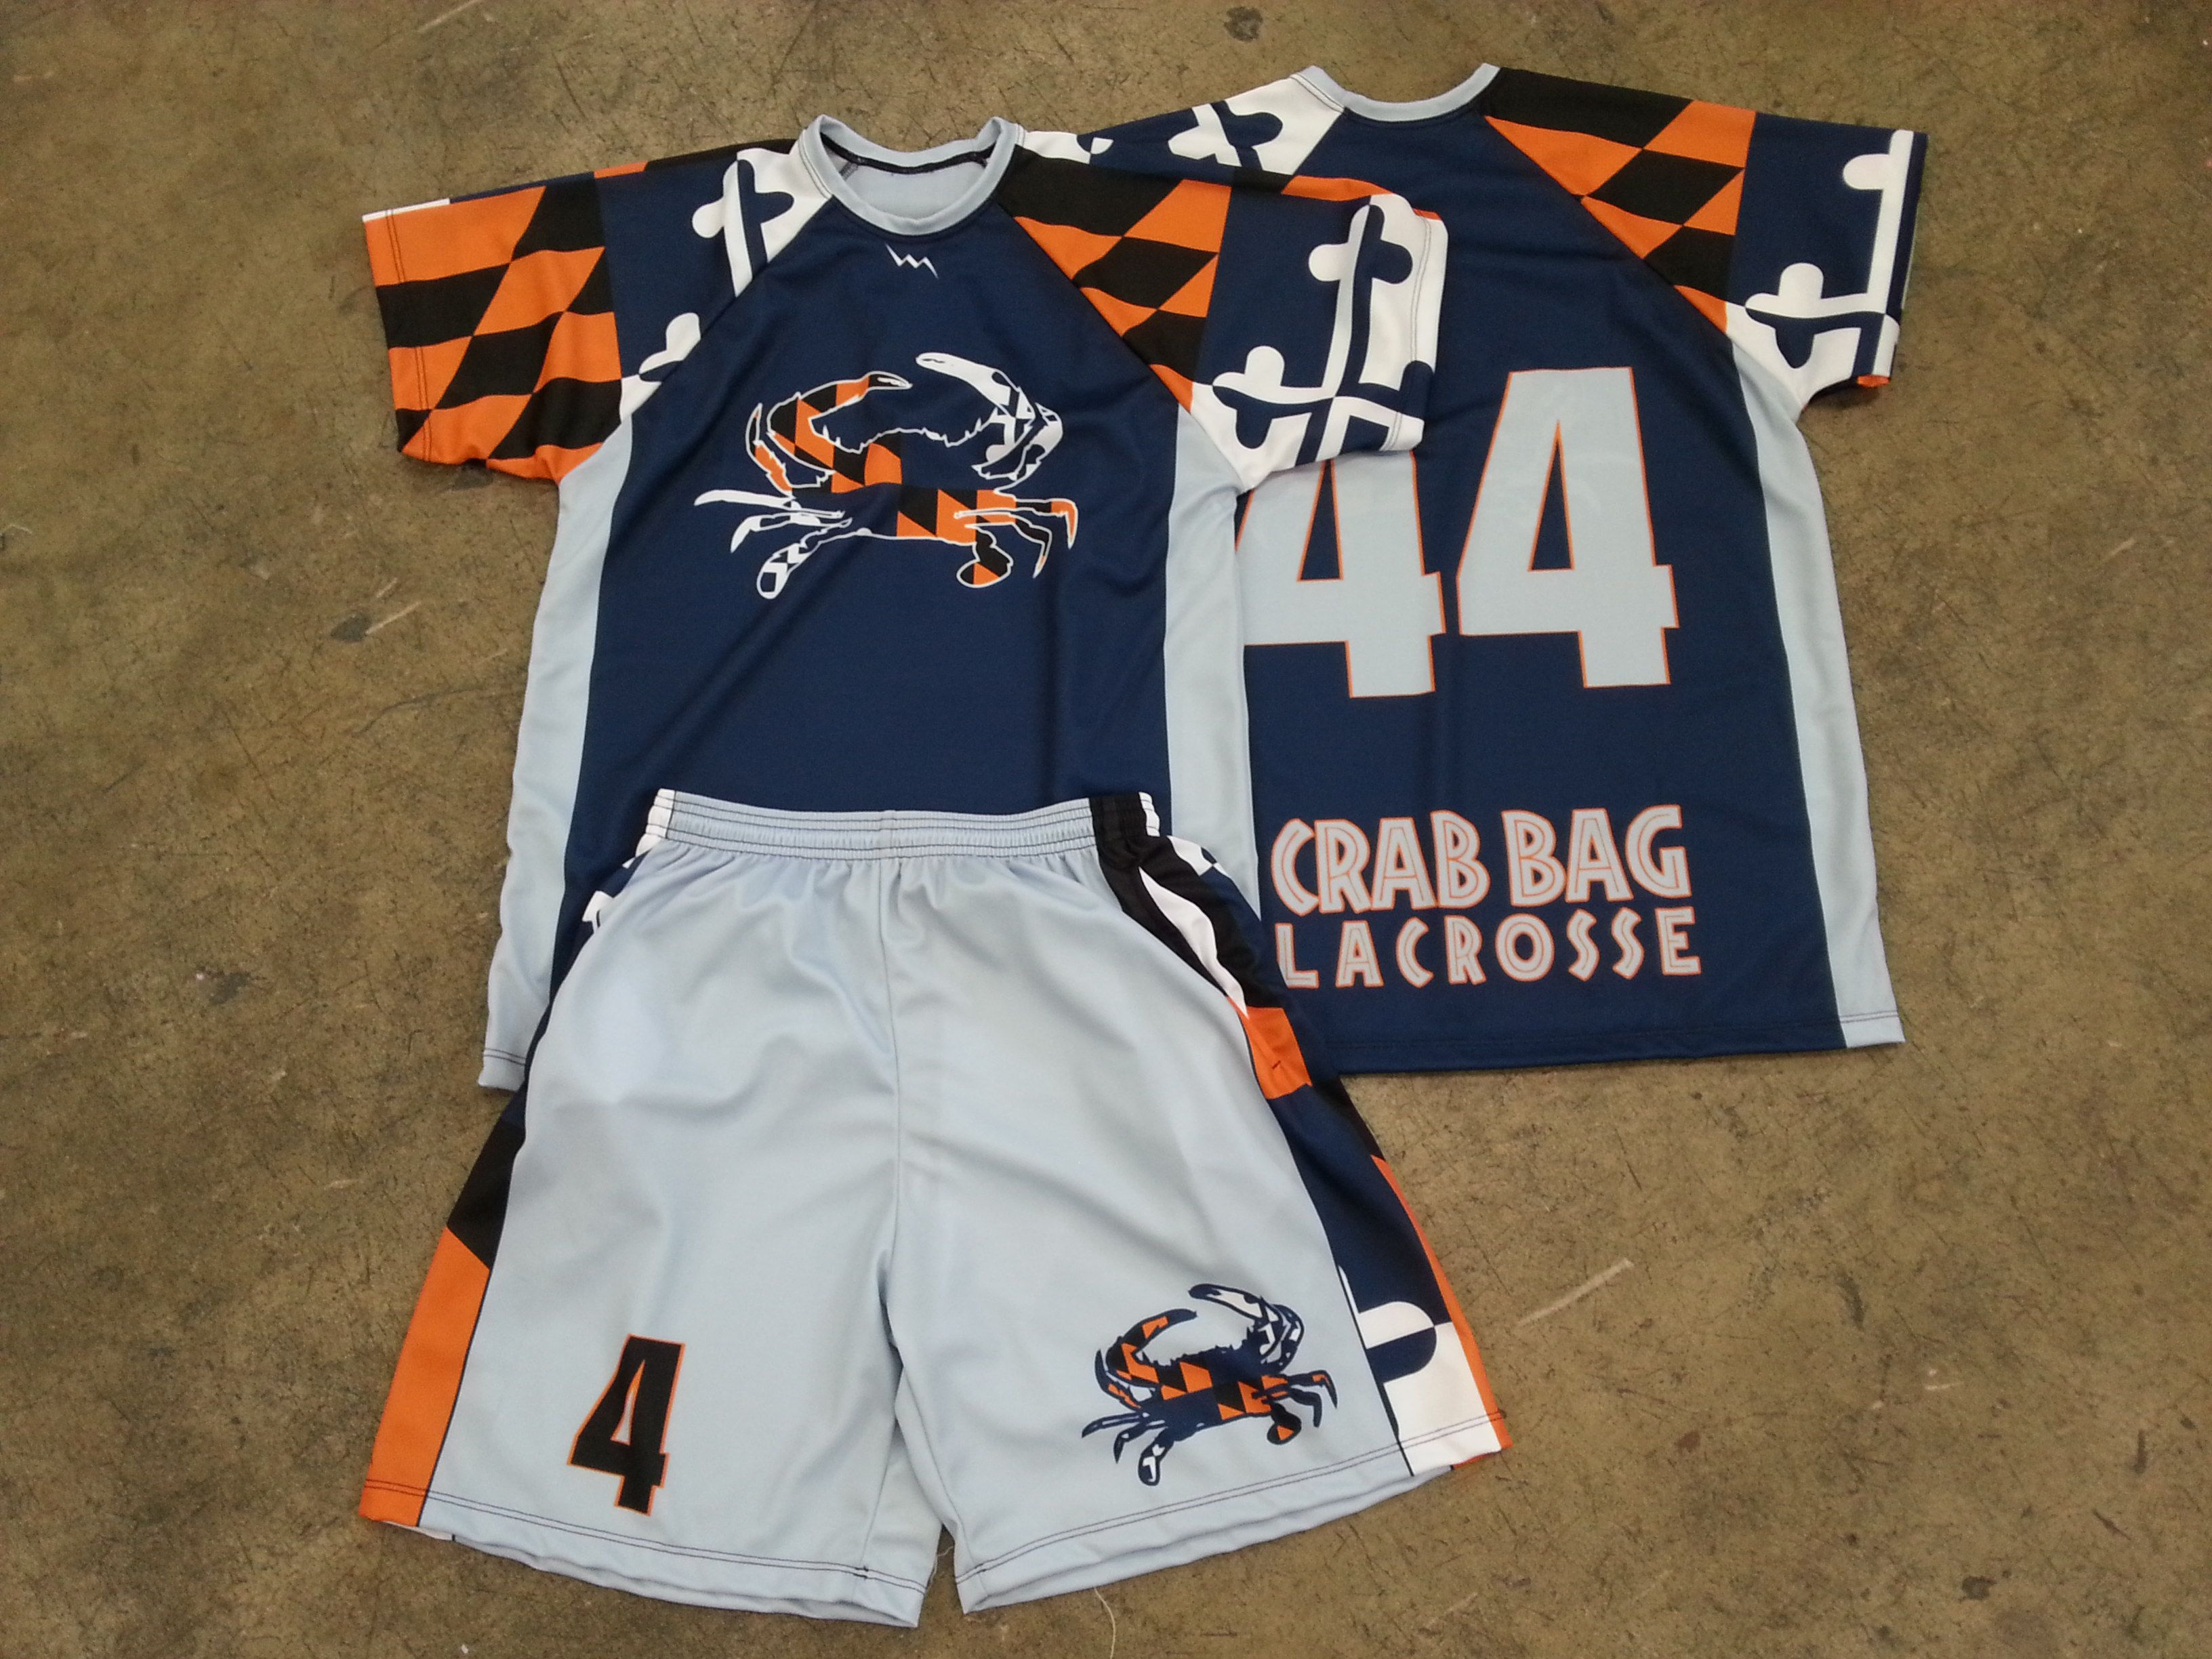 Design your own t shirt made in usa - Ocean City Maryland Lacrosse Tournament Uniforms Ocmd From Lightning Wear Lax Uniforms Usa Made From The Most Reliable Source